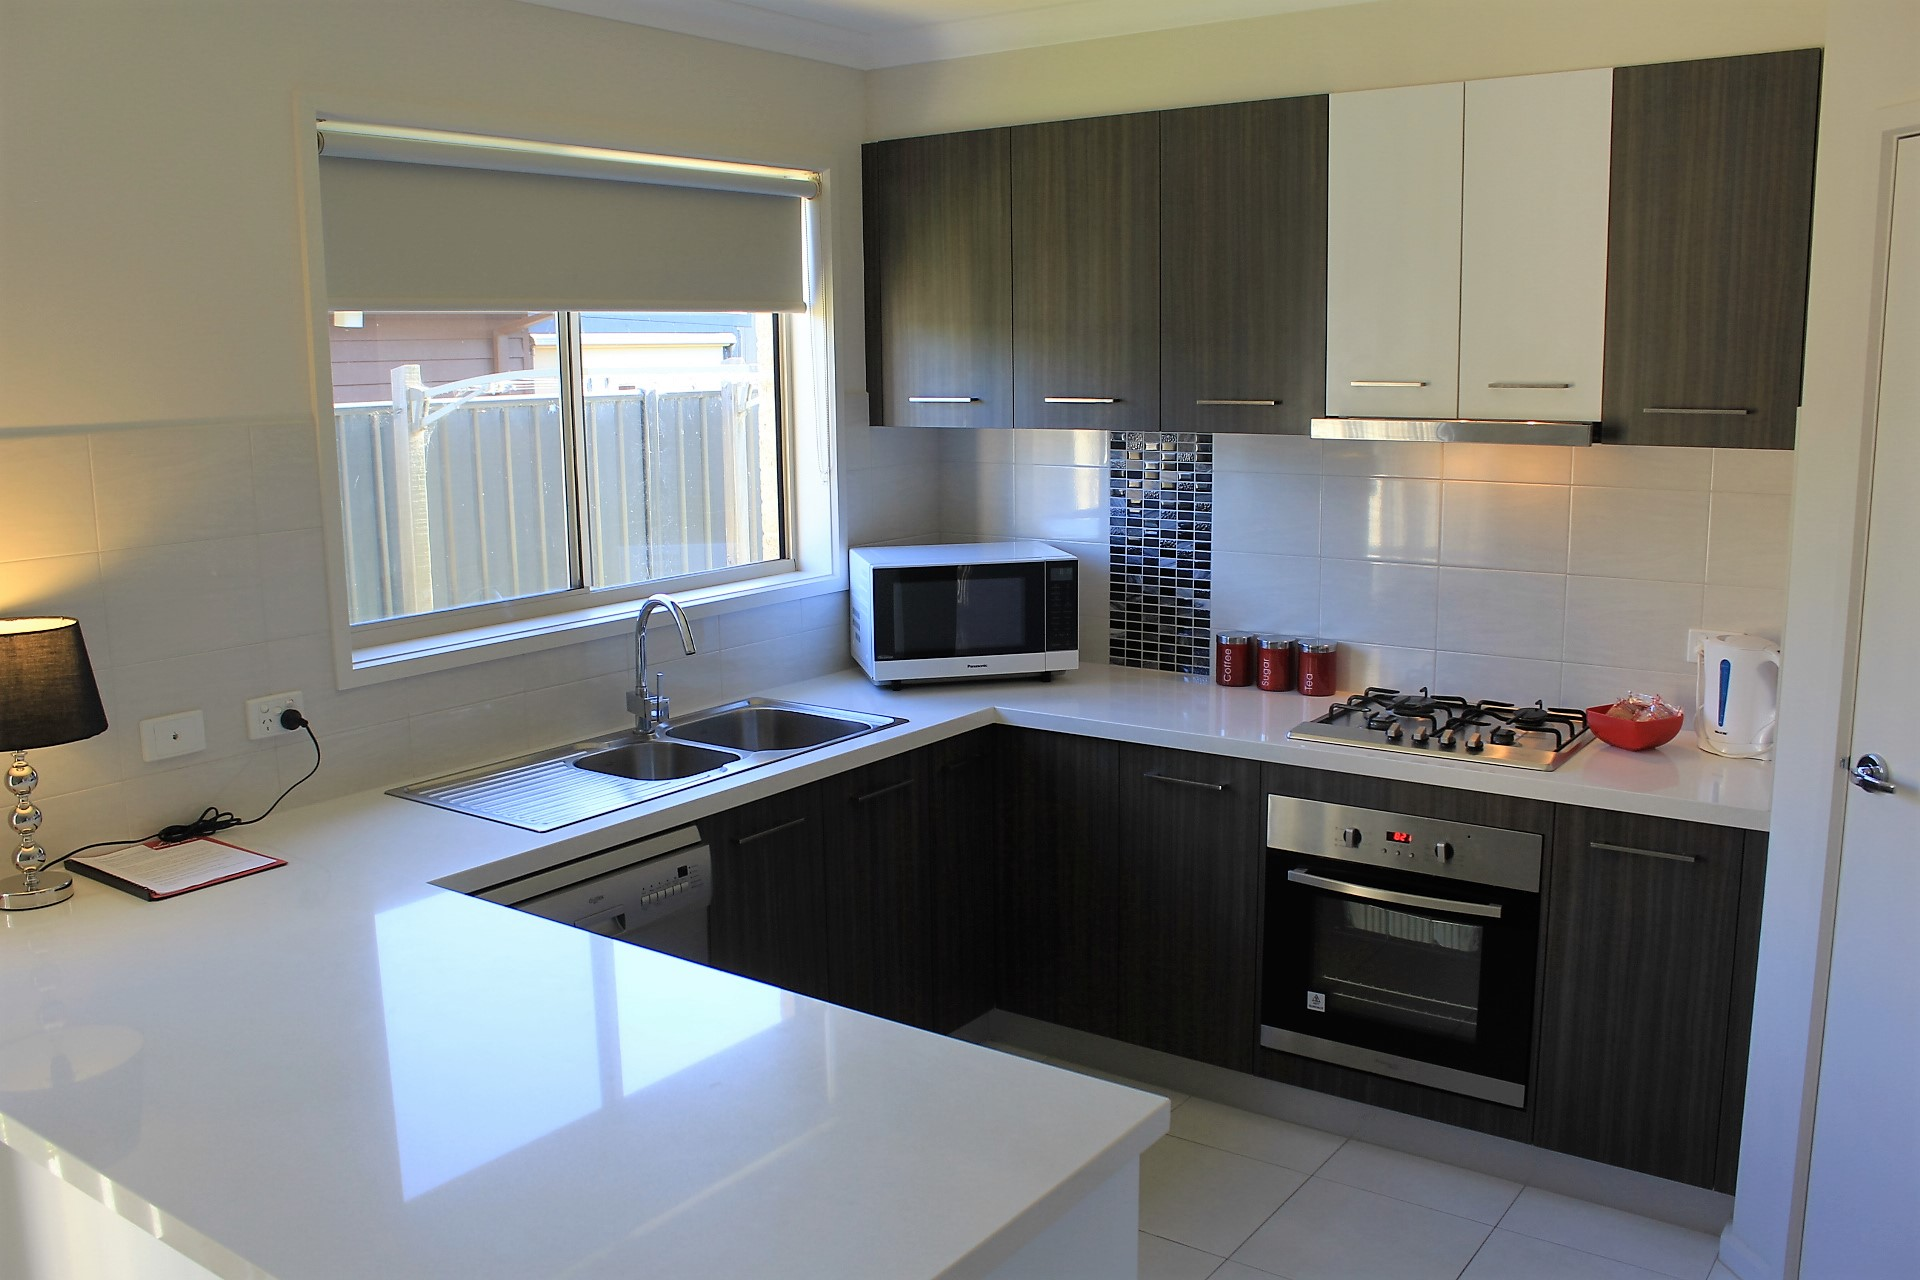 Apts 1 & 2 Kitchen (1)